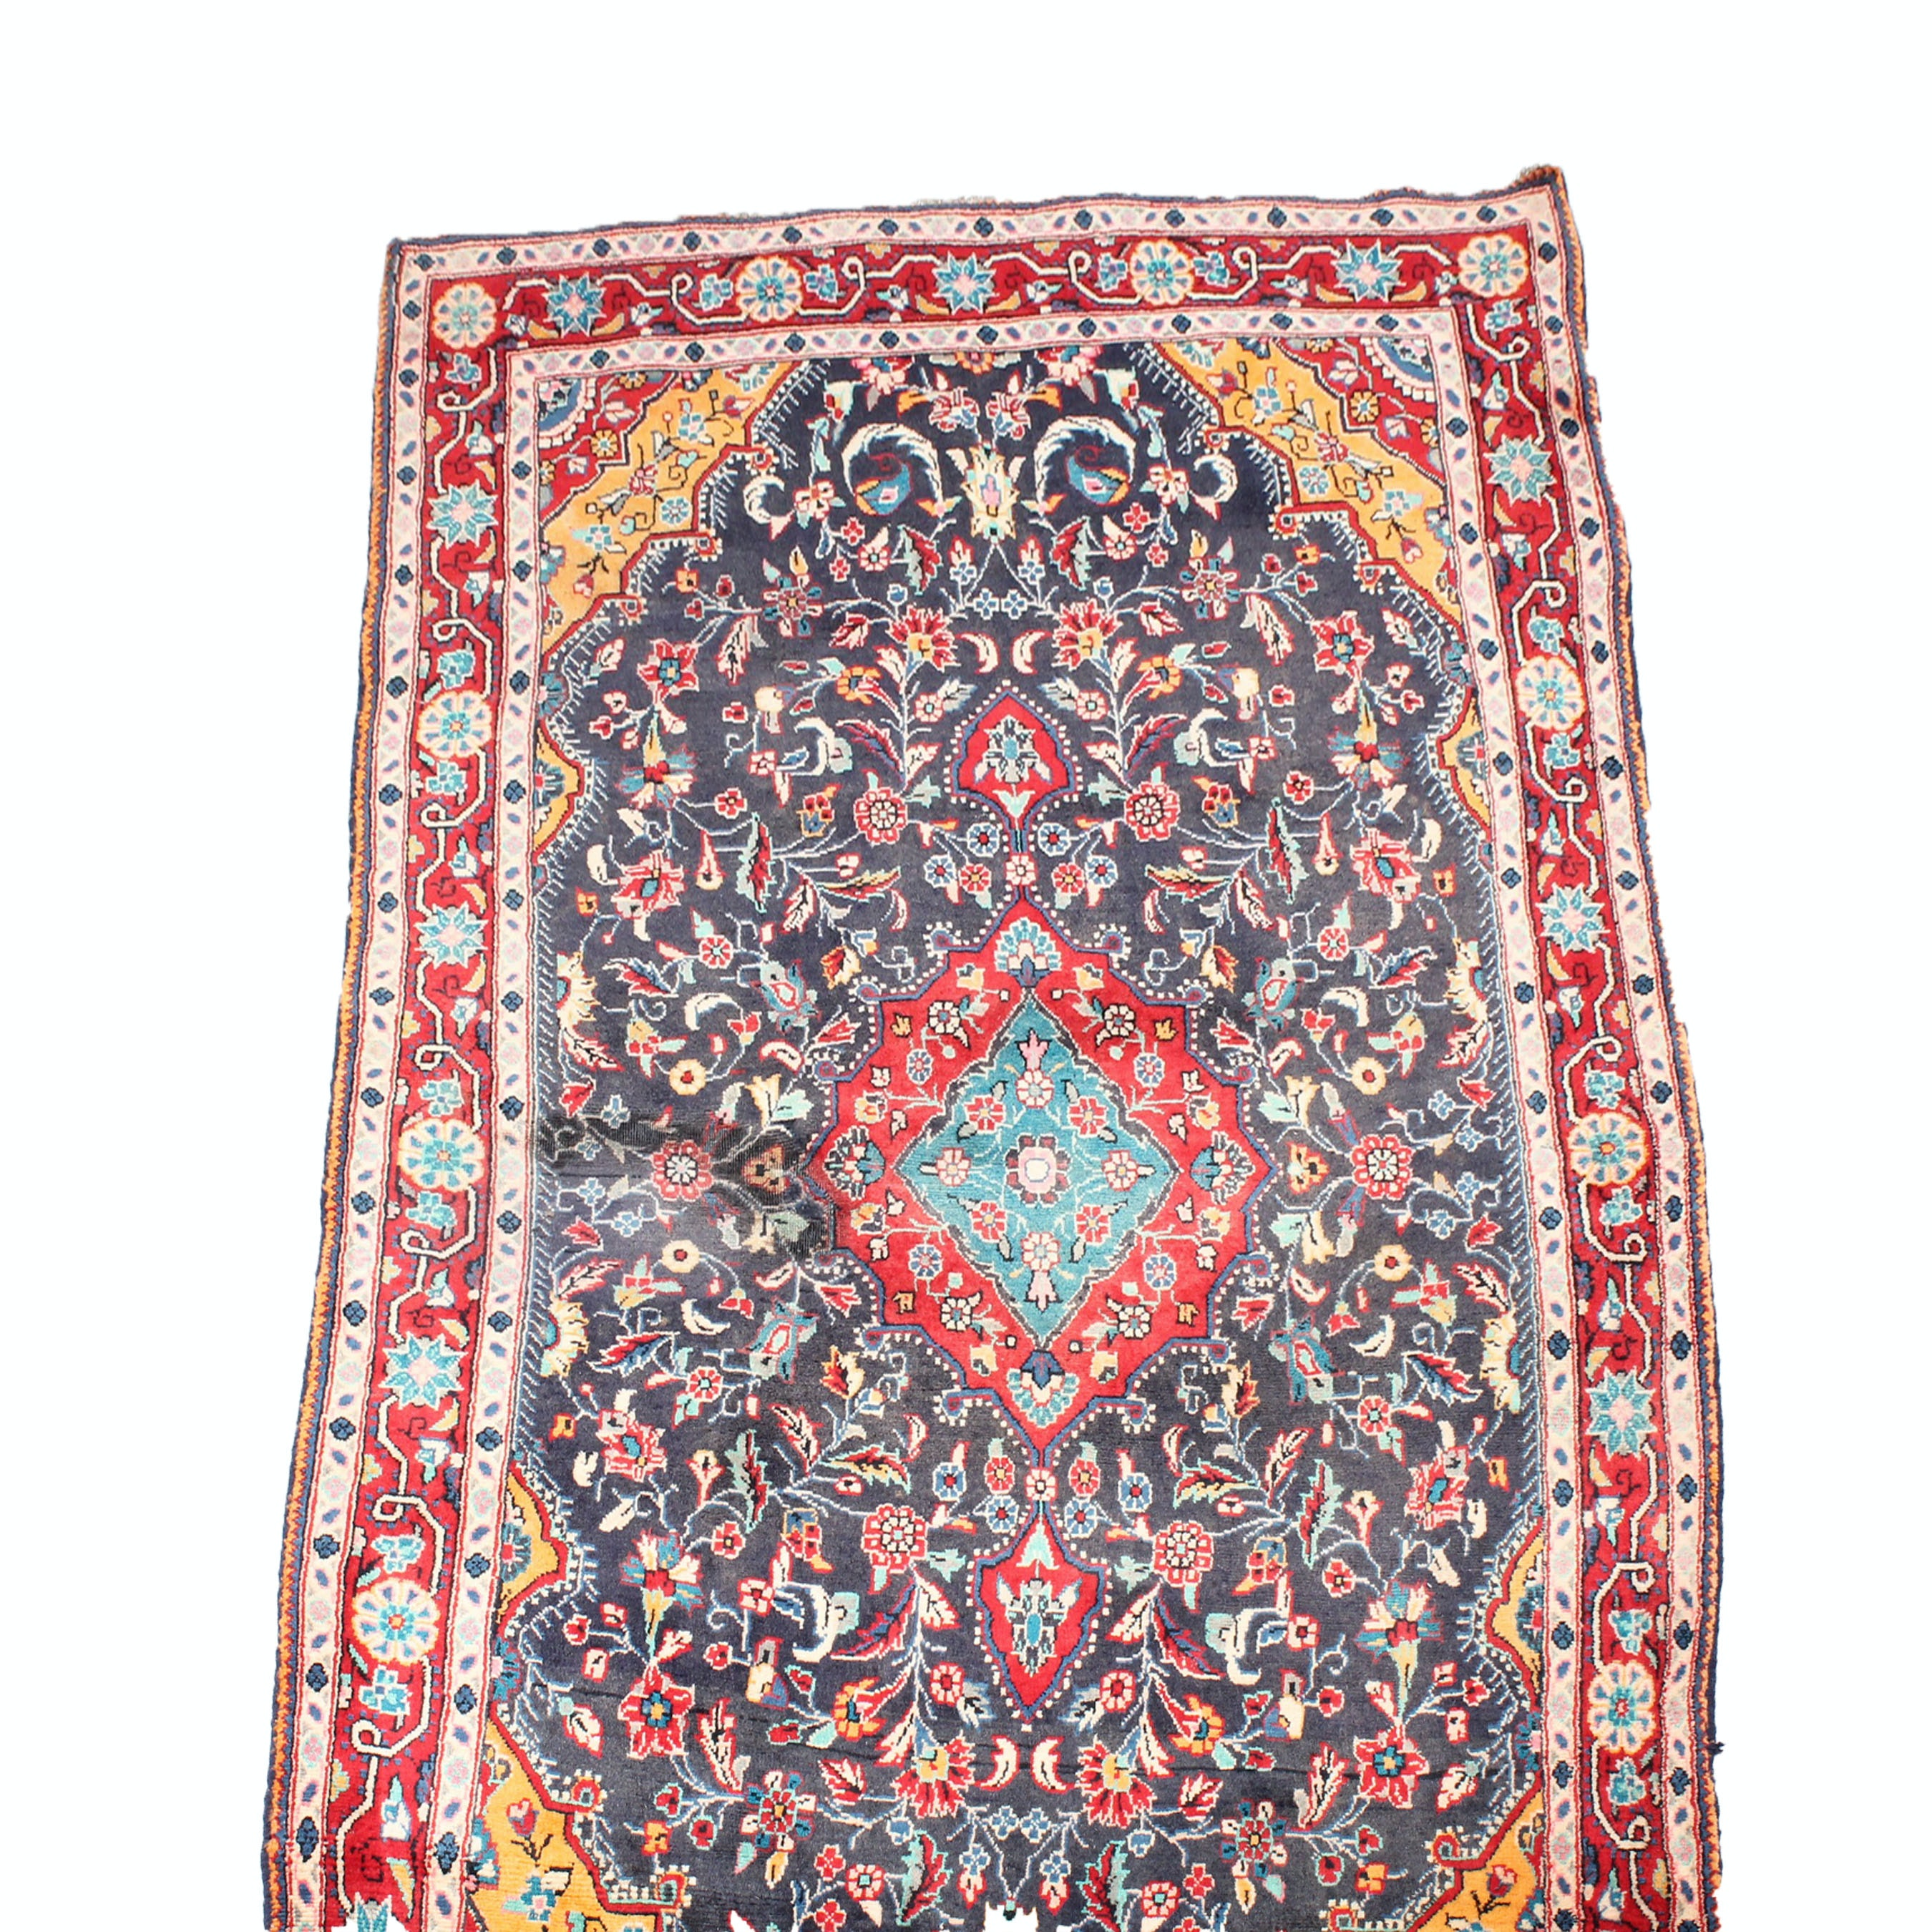 3' x 8' Vintage Hand-Knotted Persian Malayer Sarouk Rug